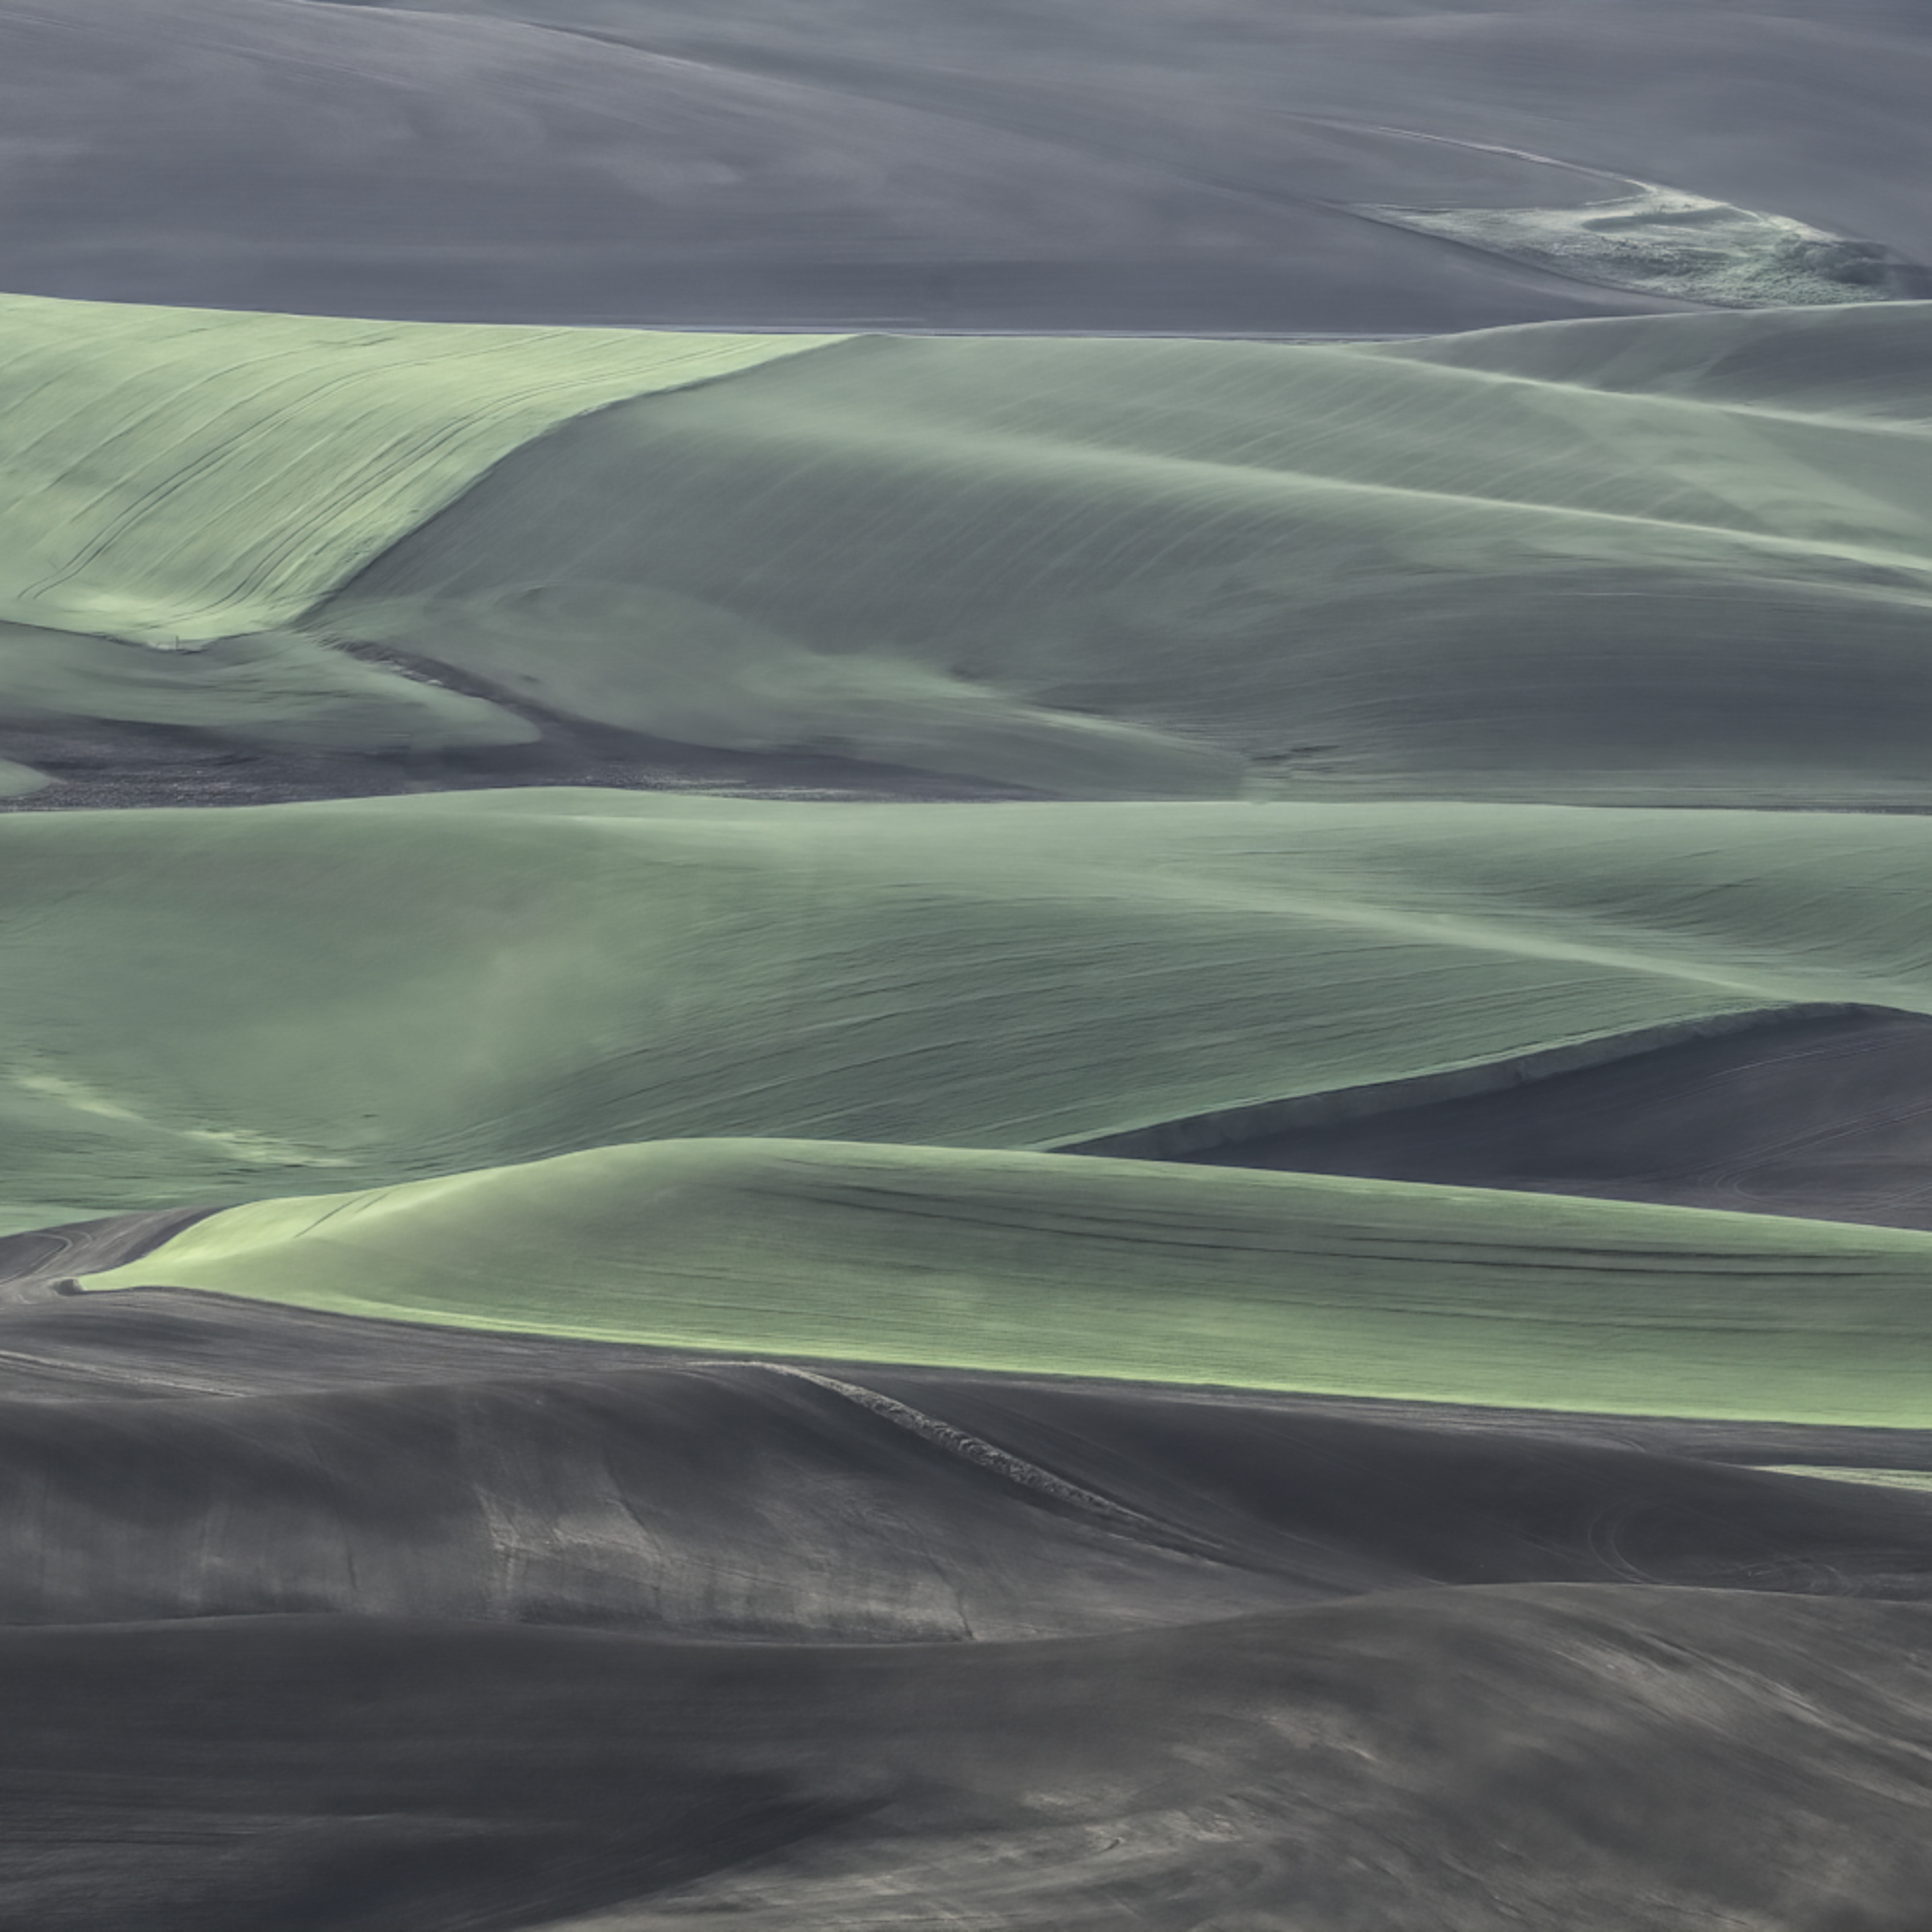 Waves of green in a sea of black hd4yus